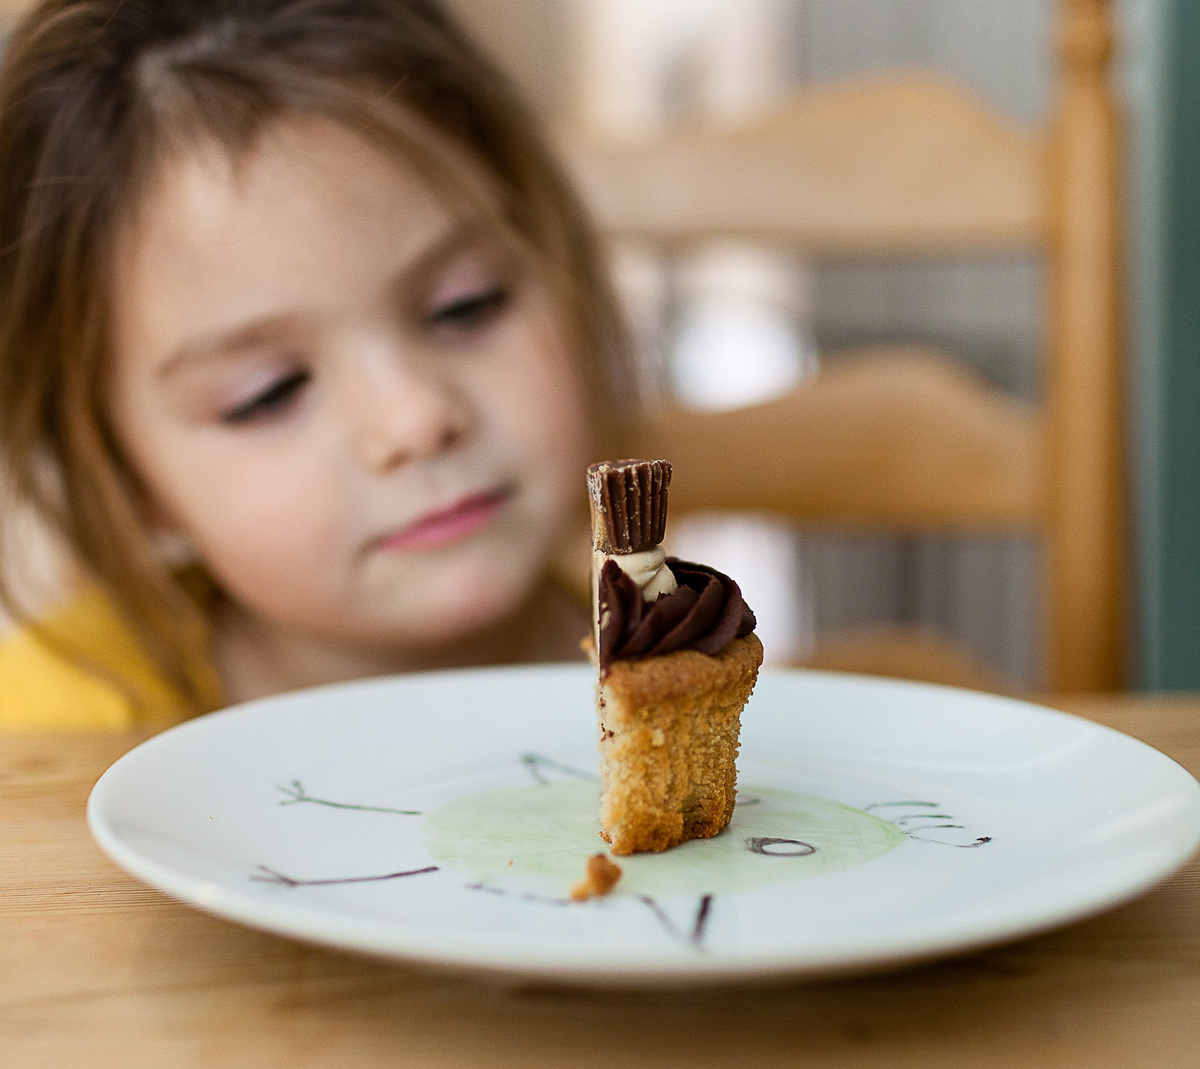 Girl stares at half of a cupcake on a plate.